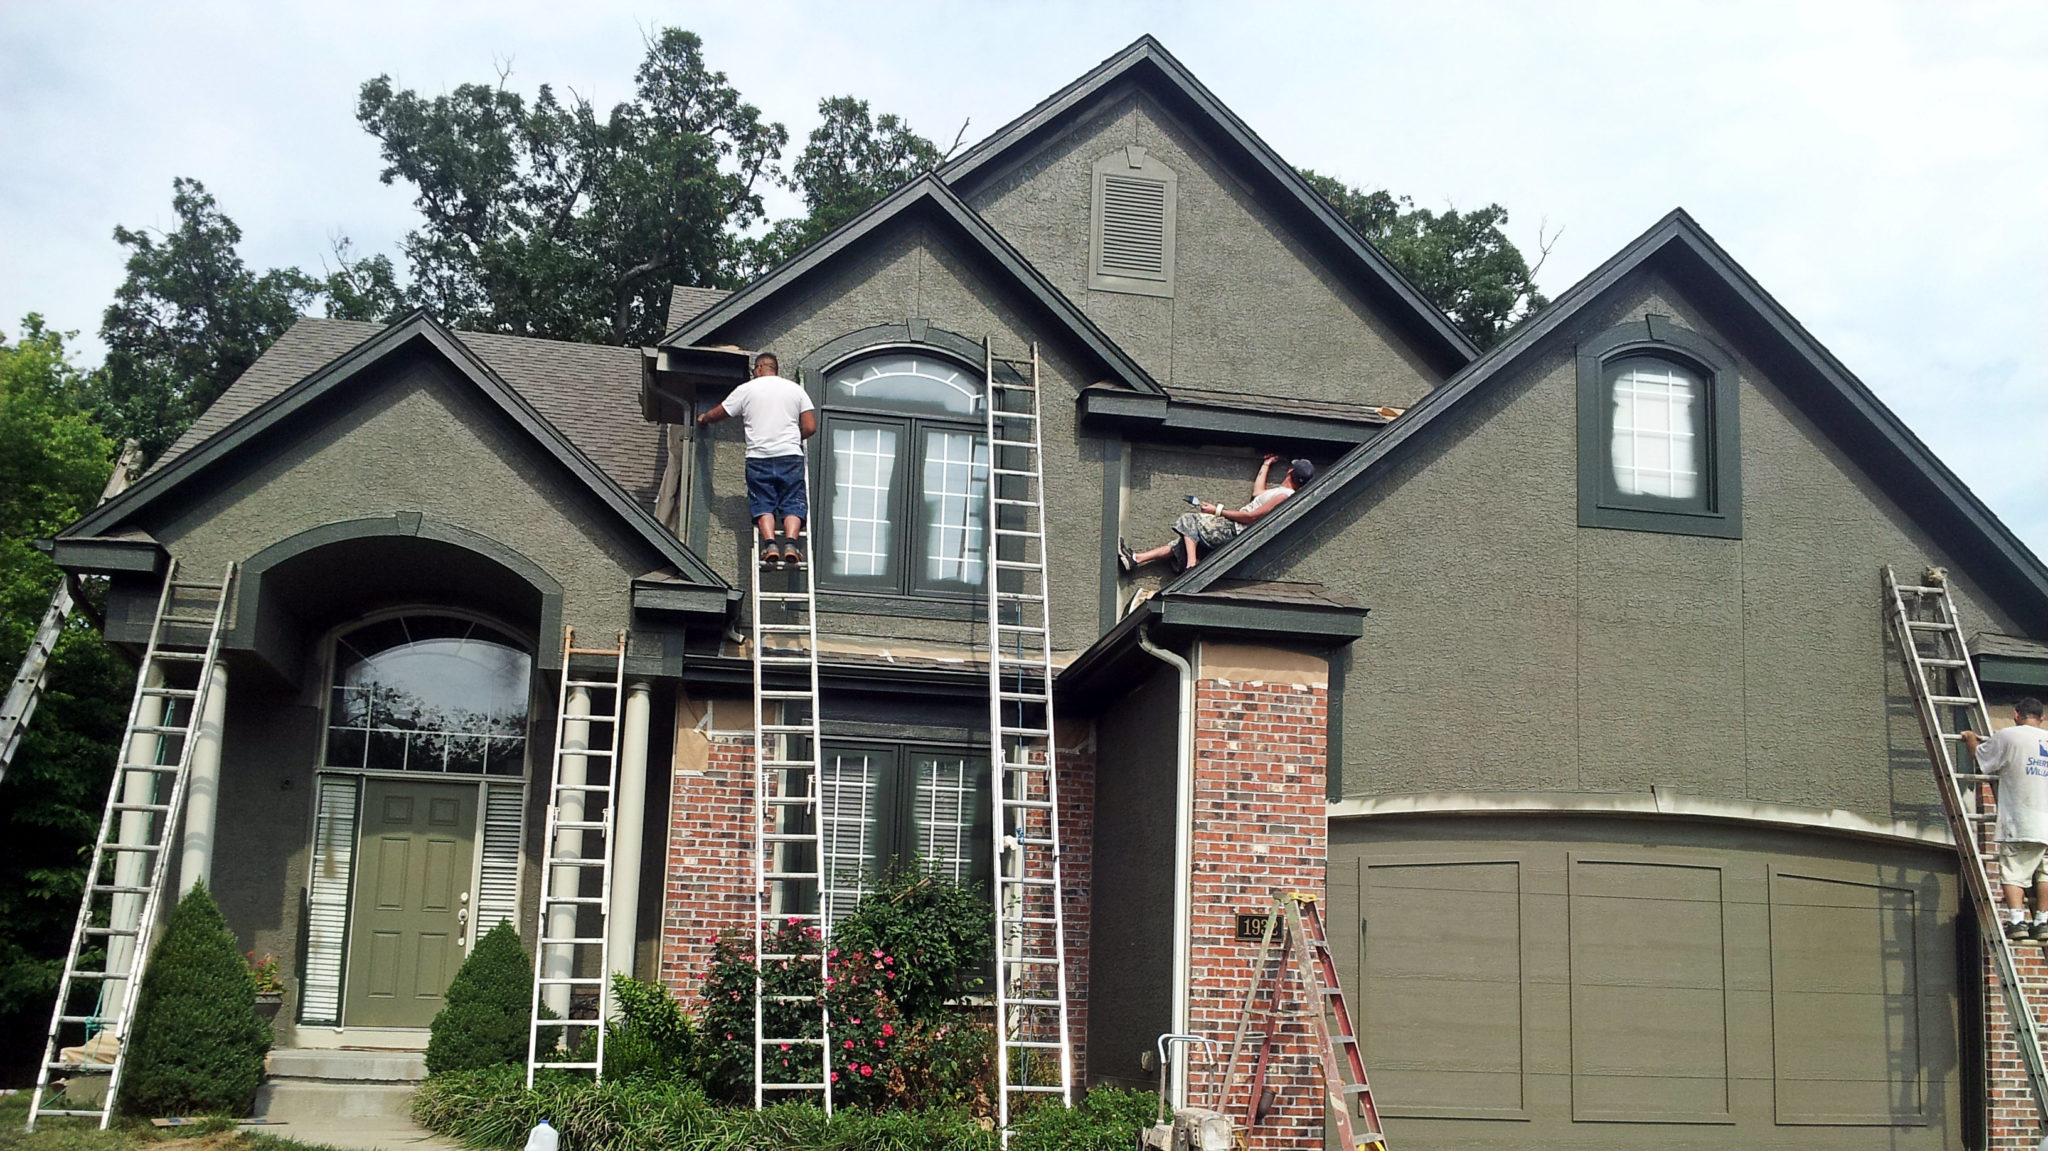 preparing-house-for-painting-exterior-on-exterior-picture-15-scaled-1.jpg